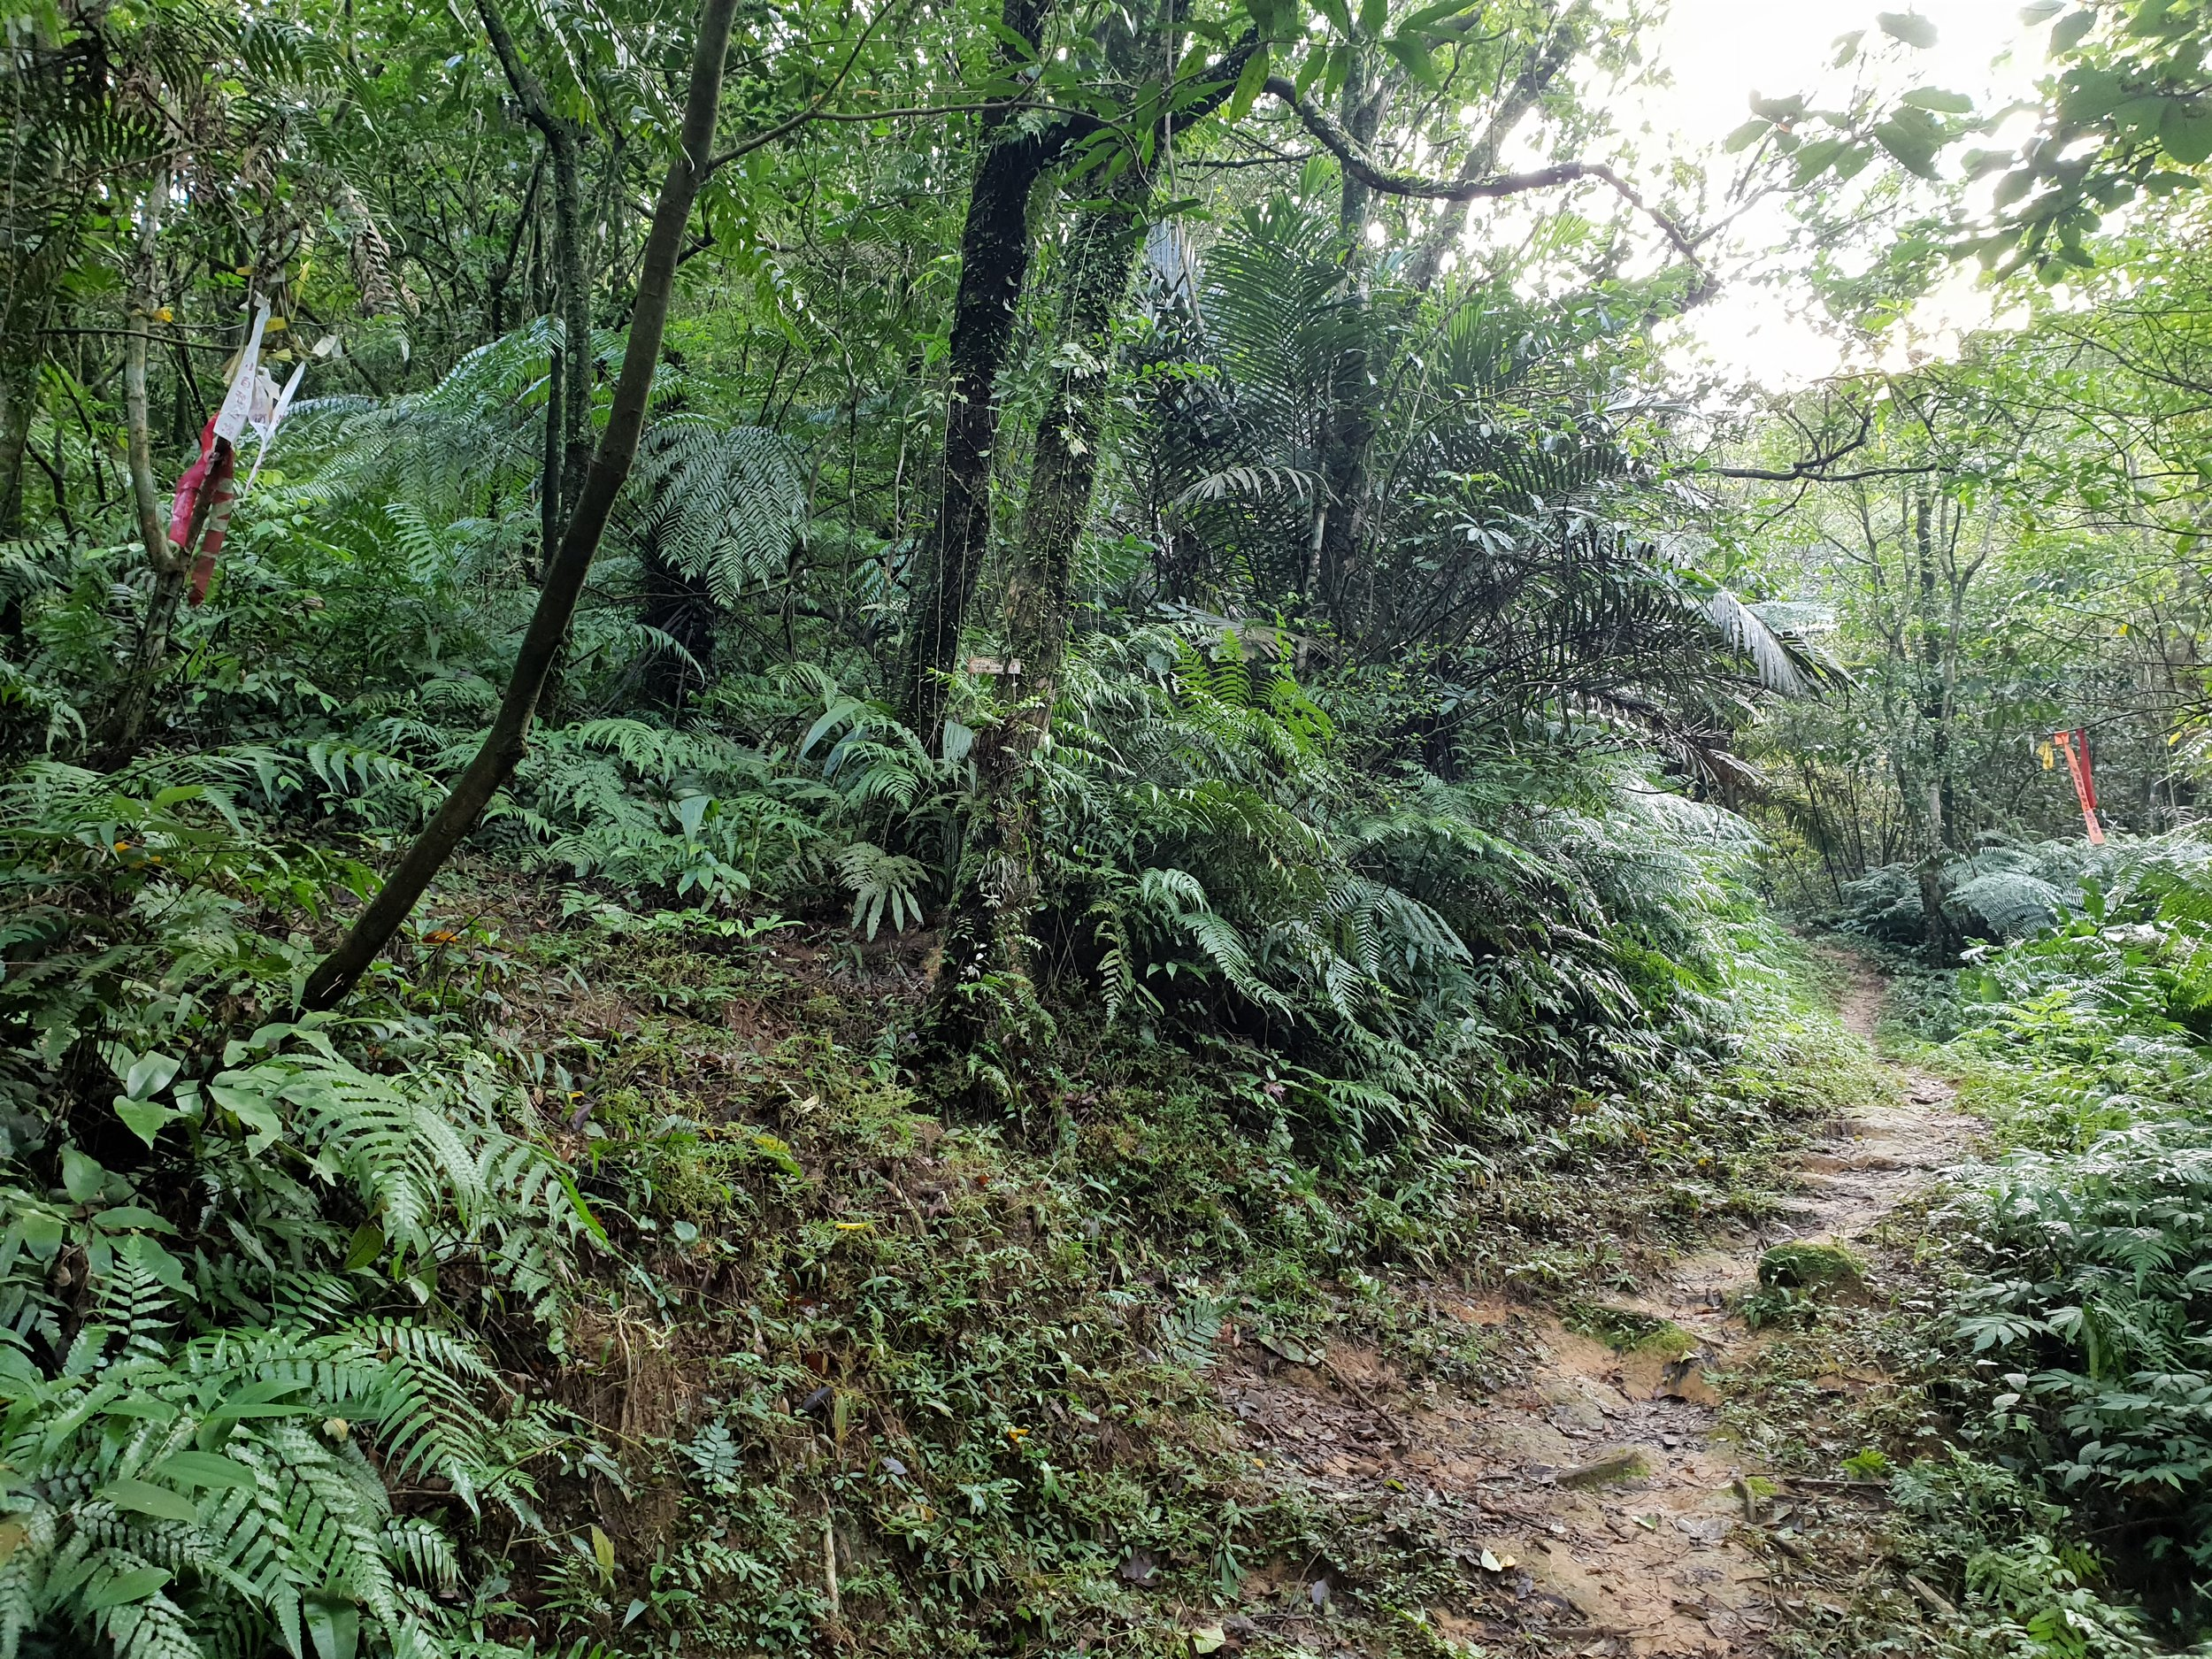 If you're coming from Sandiaoling the left path heads up Mt Youkeng. The flat path goes to the bamboo clearing.